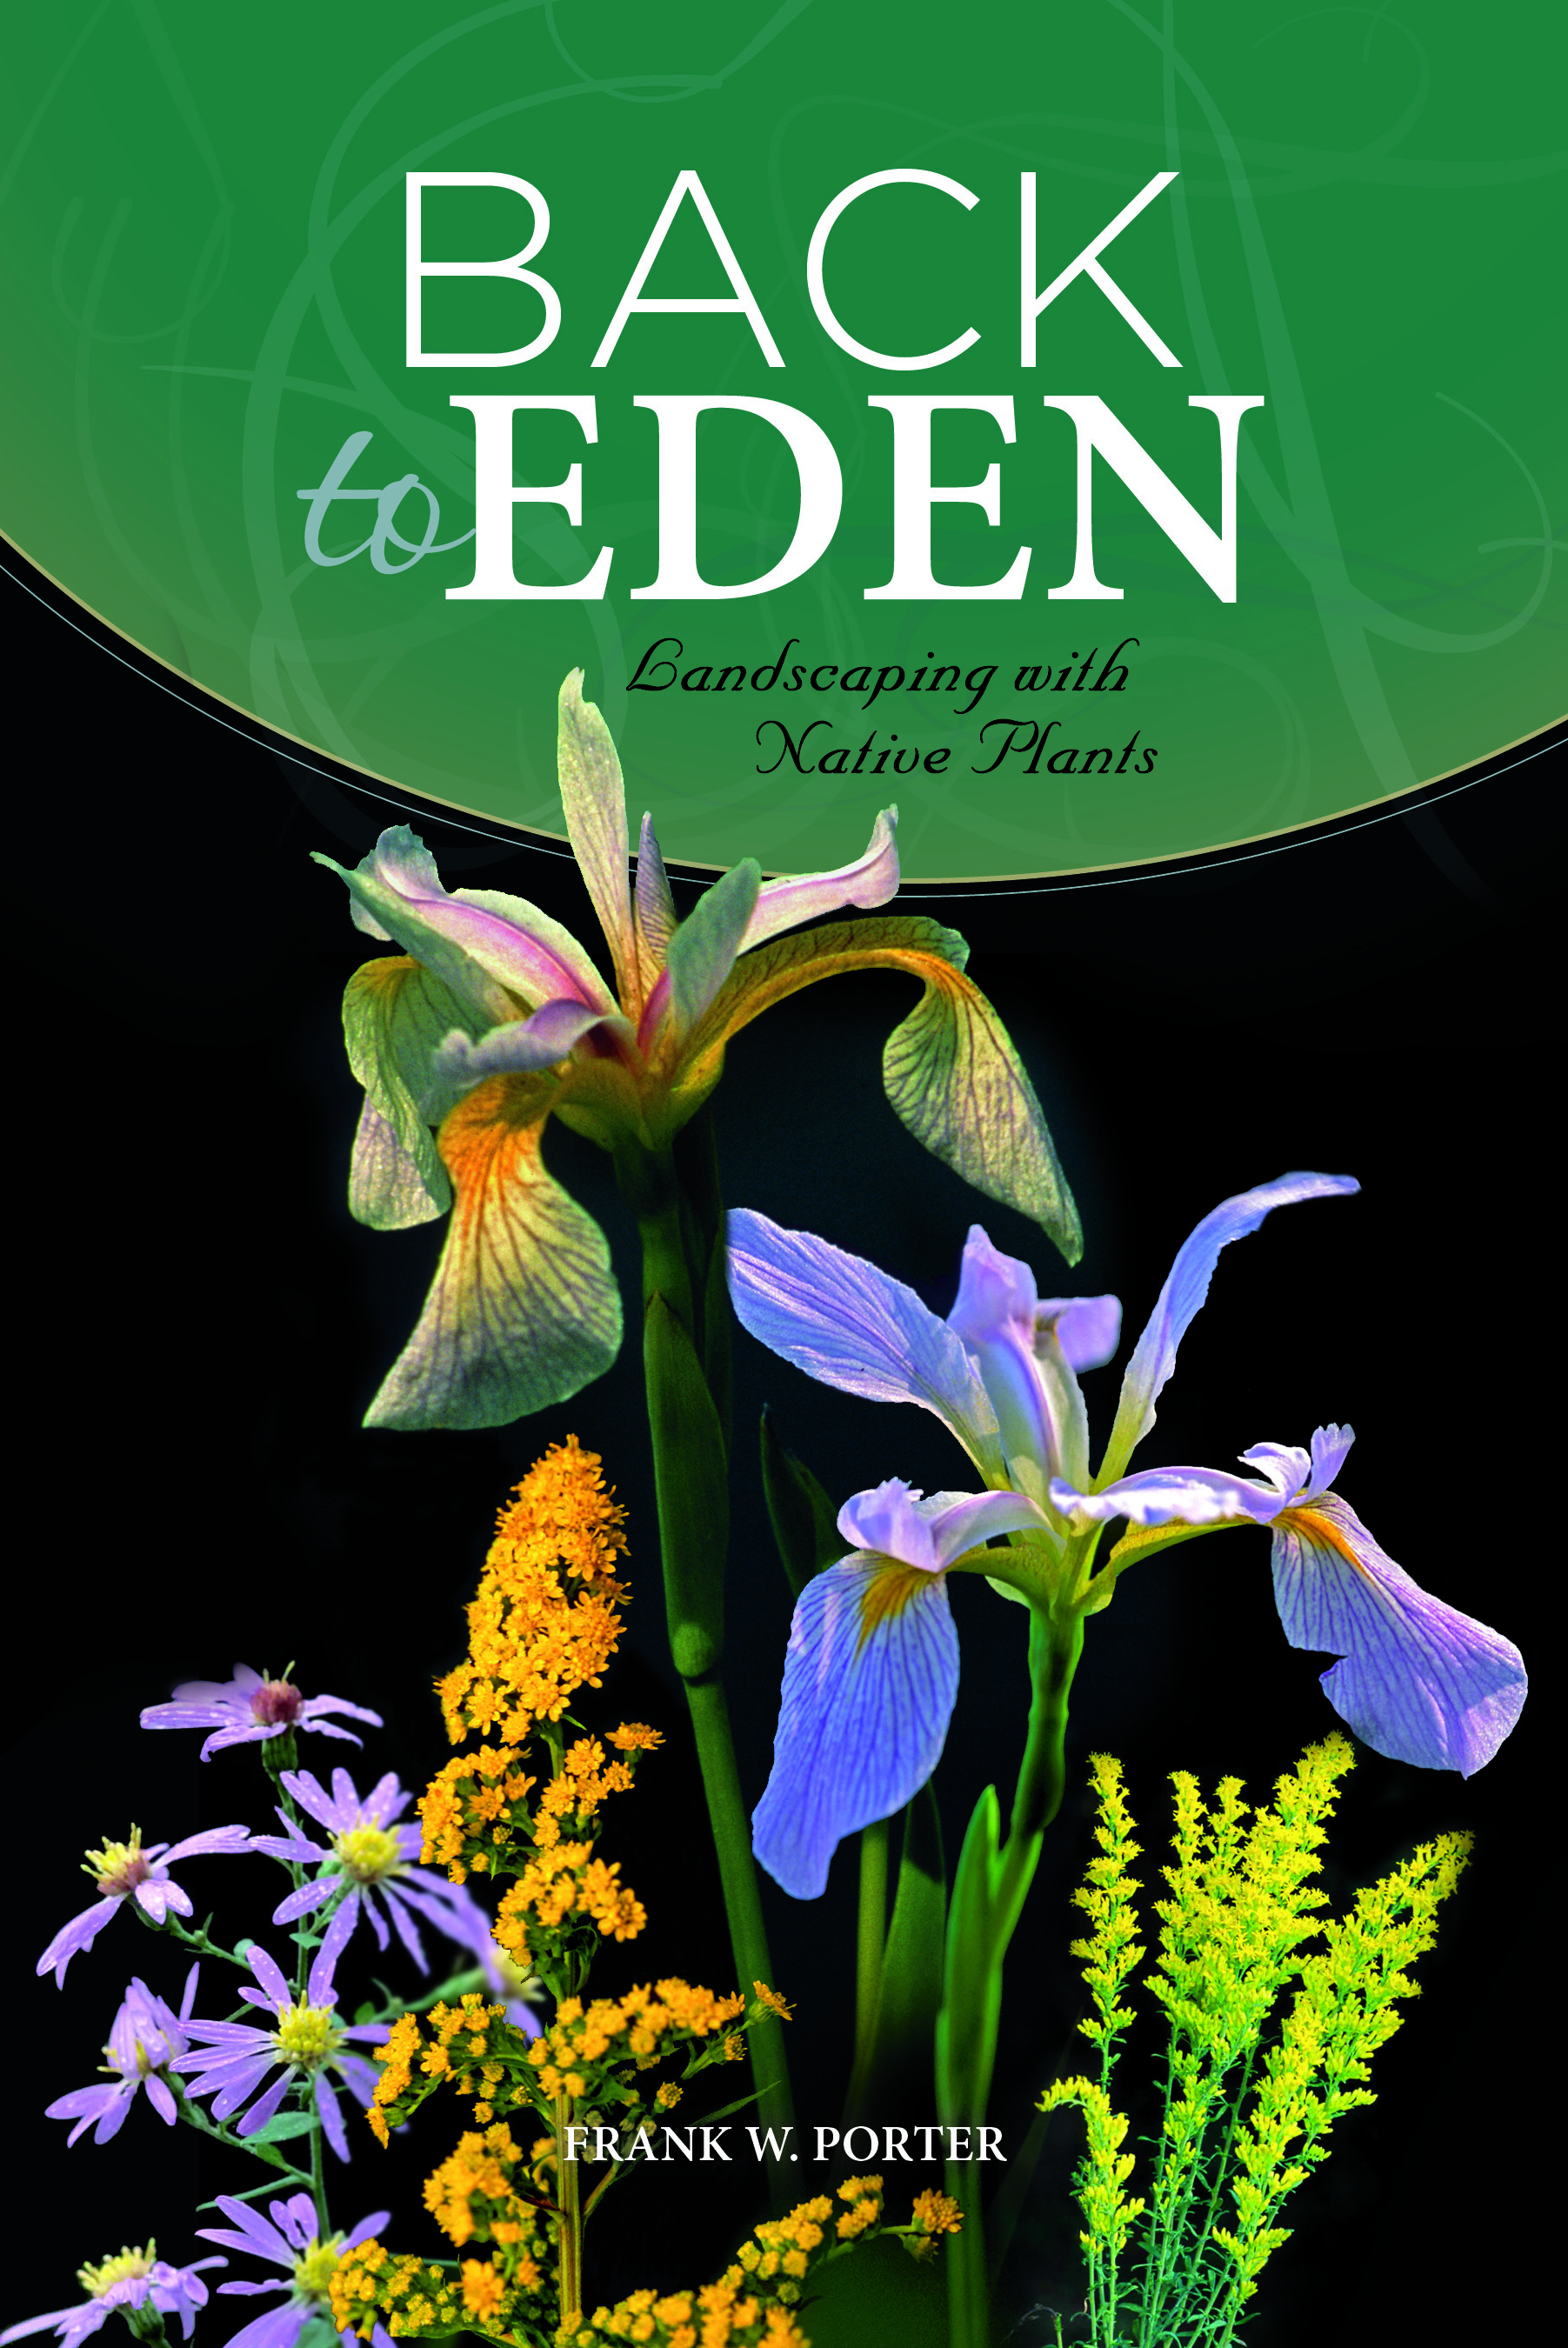 Back to Eden: Landscaping with Native Plants, by Dr. Frank Porter